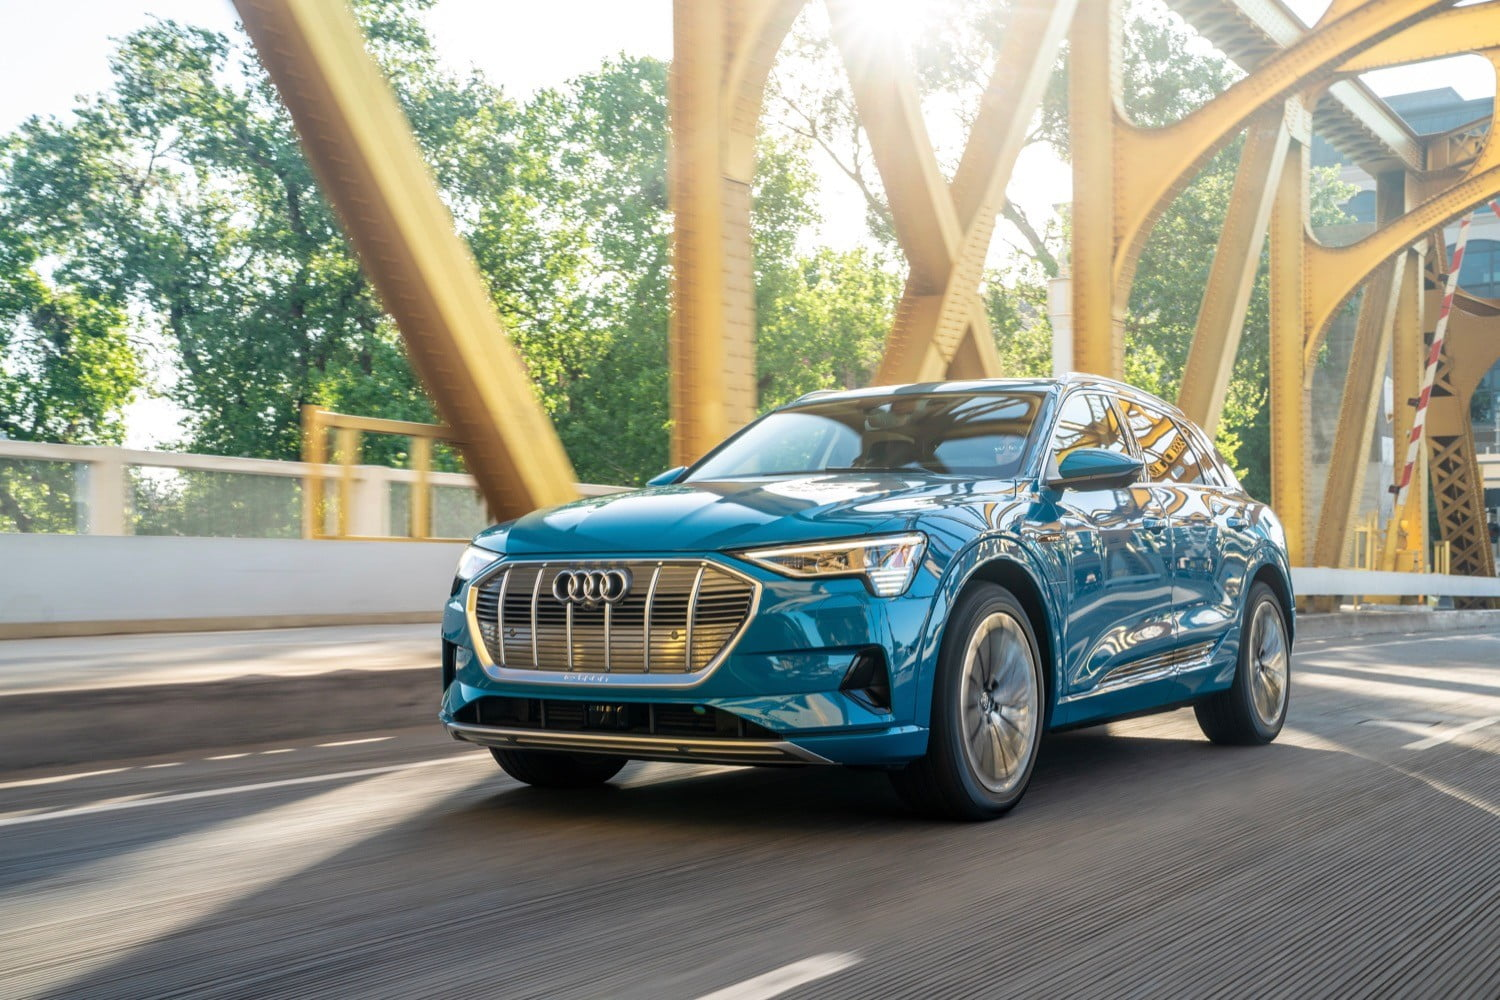 Every electric car available in 2020